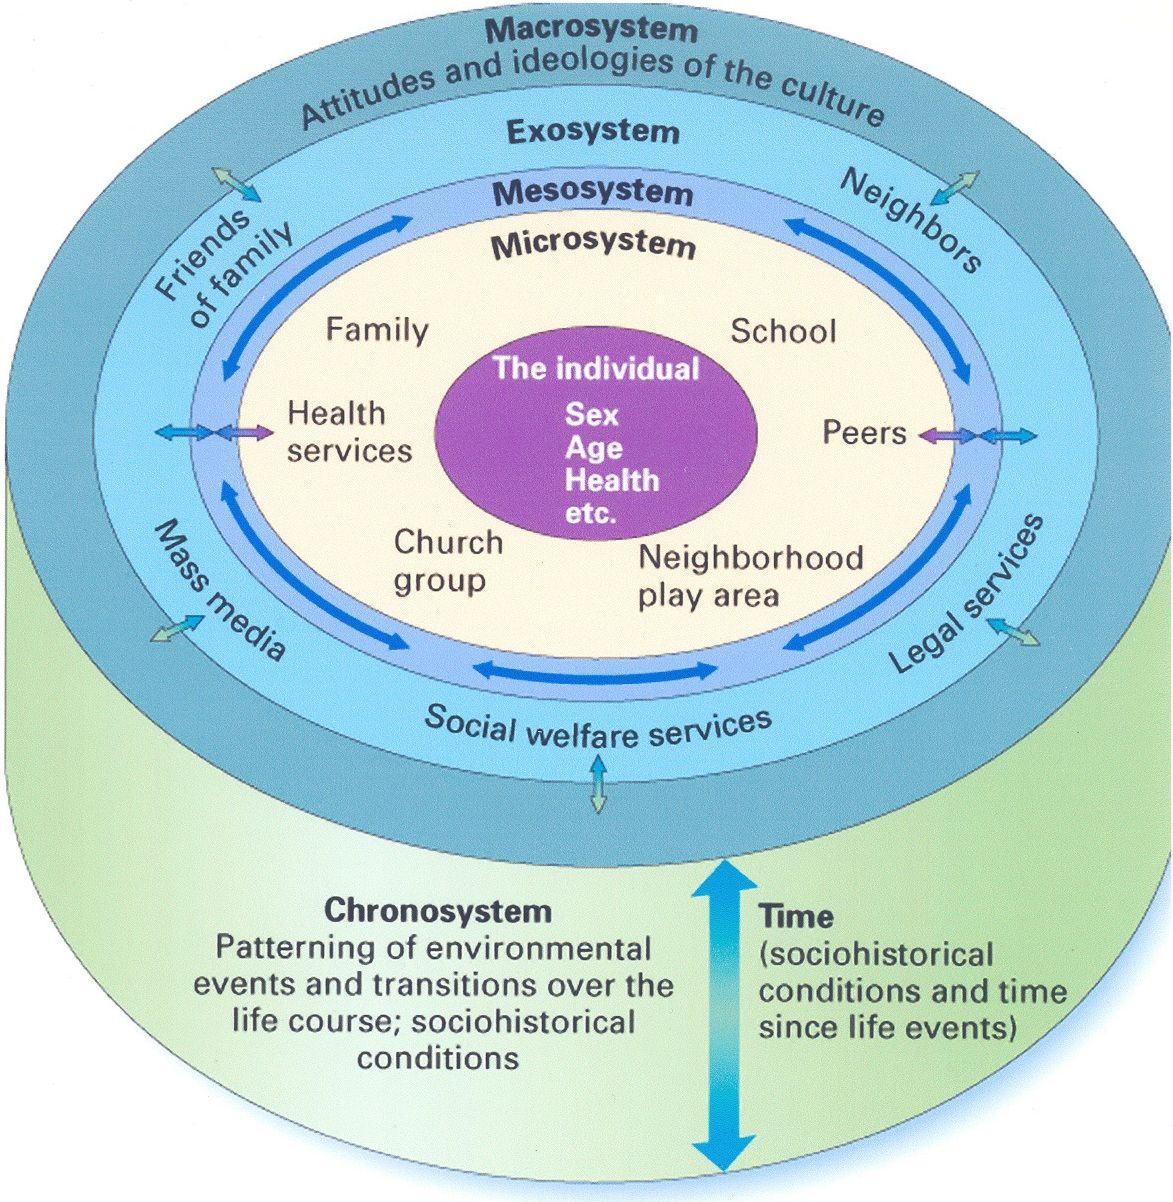 Urie Brofenbrenner S Ecological Systems Theory Think About This In Relation To Your Own Life Usin Ecological Systems Theory Systems Theory Ecological Systems